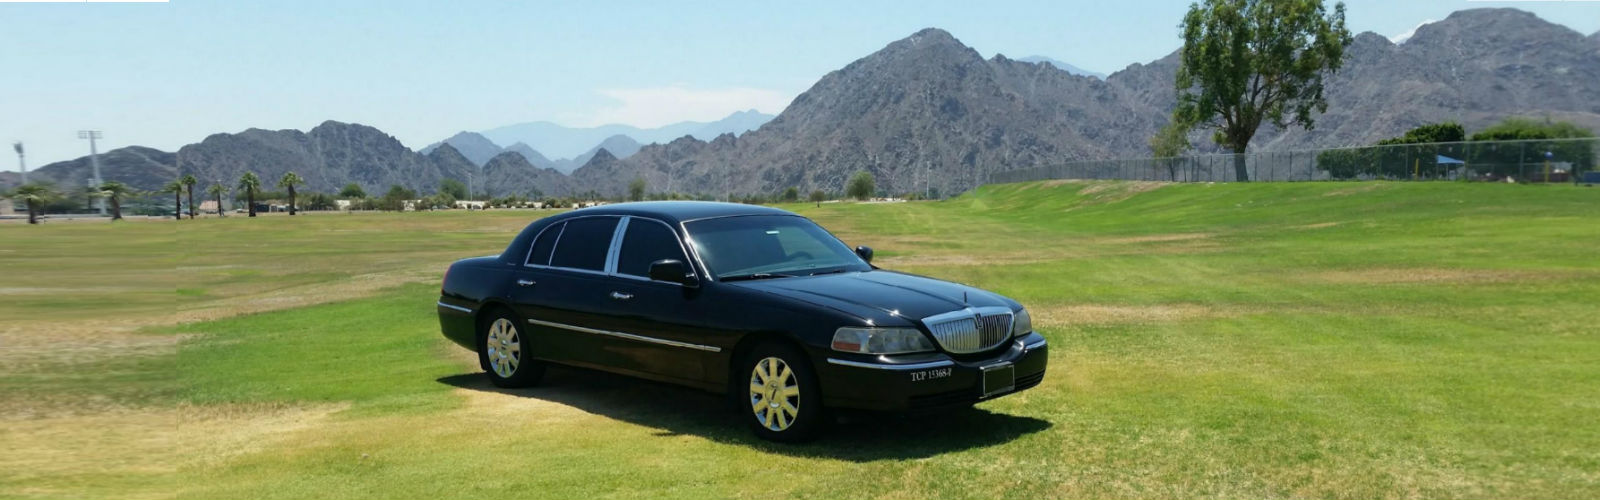 first-class-limo-sedan.jpg